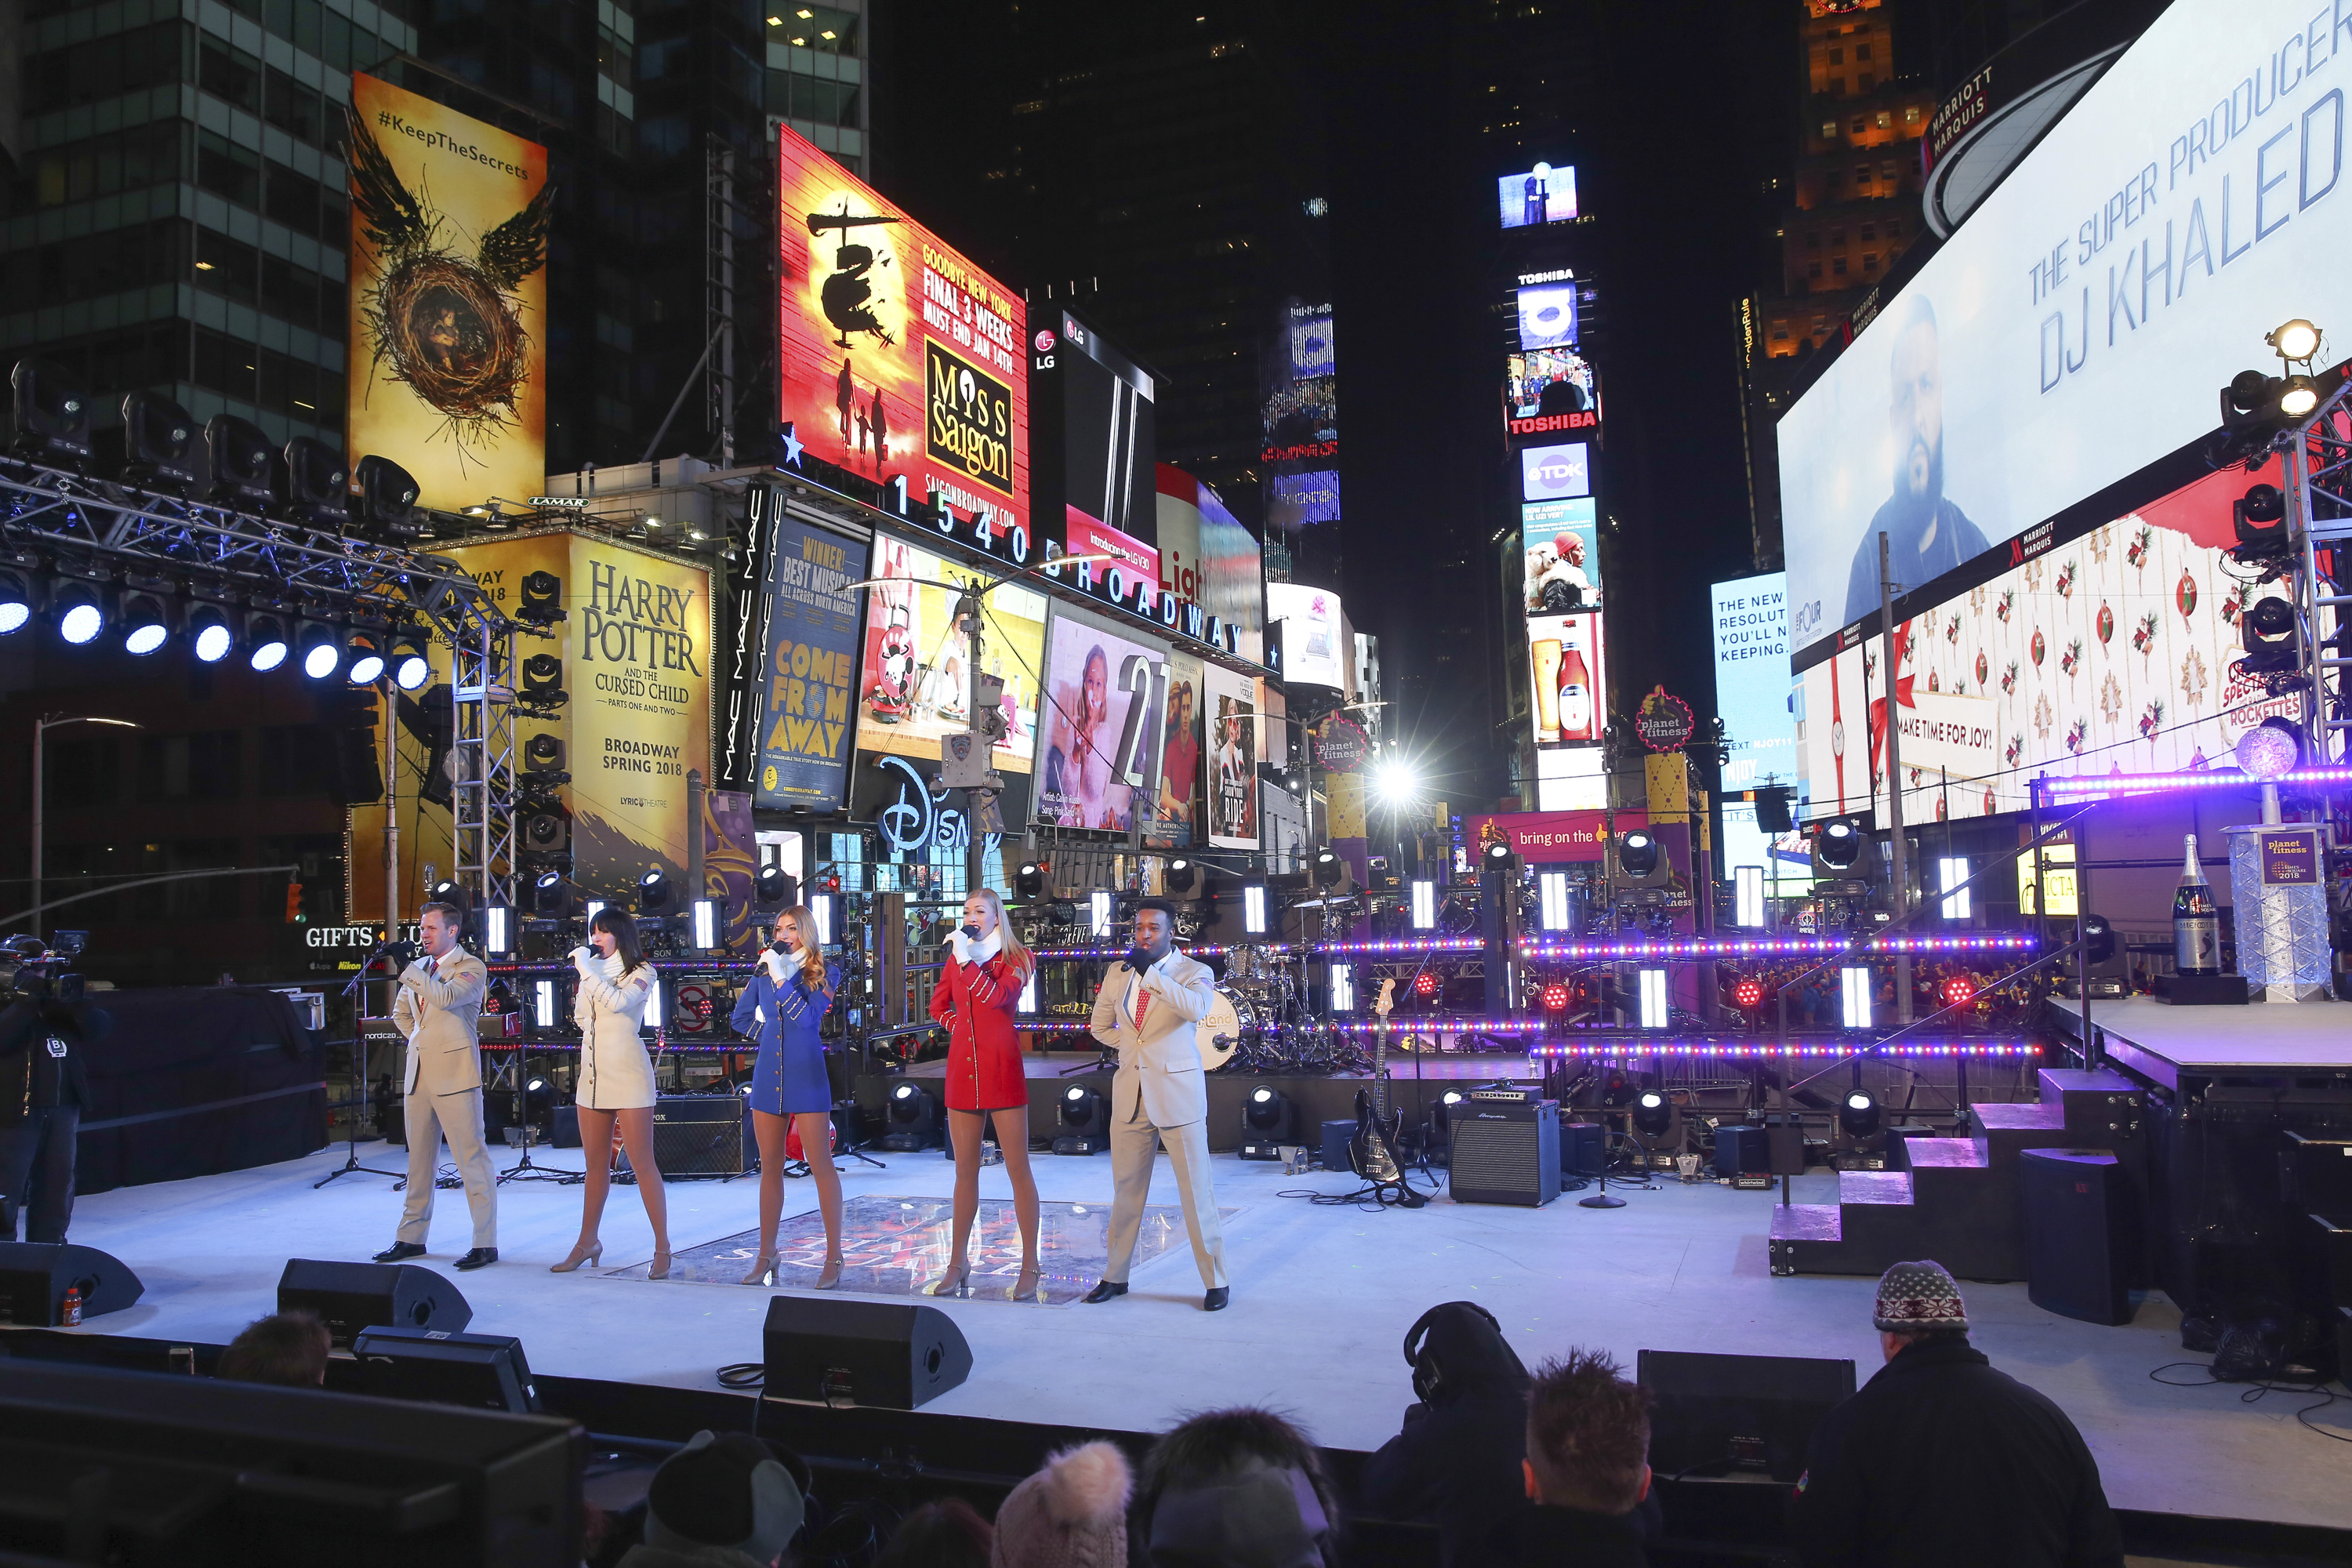 "<div class=""meta image-caption""><div class=""origin-logo origin-image ap""><span>AP</span></div><span class=""caption-text"">The USO Troupe performs at the New Year's Eve celebration in Times Square on Sunday, Dec. 31, 2017, in New York. (Photo by Brent N. Clarke/Invision/AP) (Brent N. Clarke/Invision/AP)</span></div>"